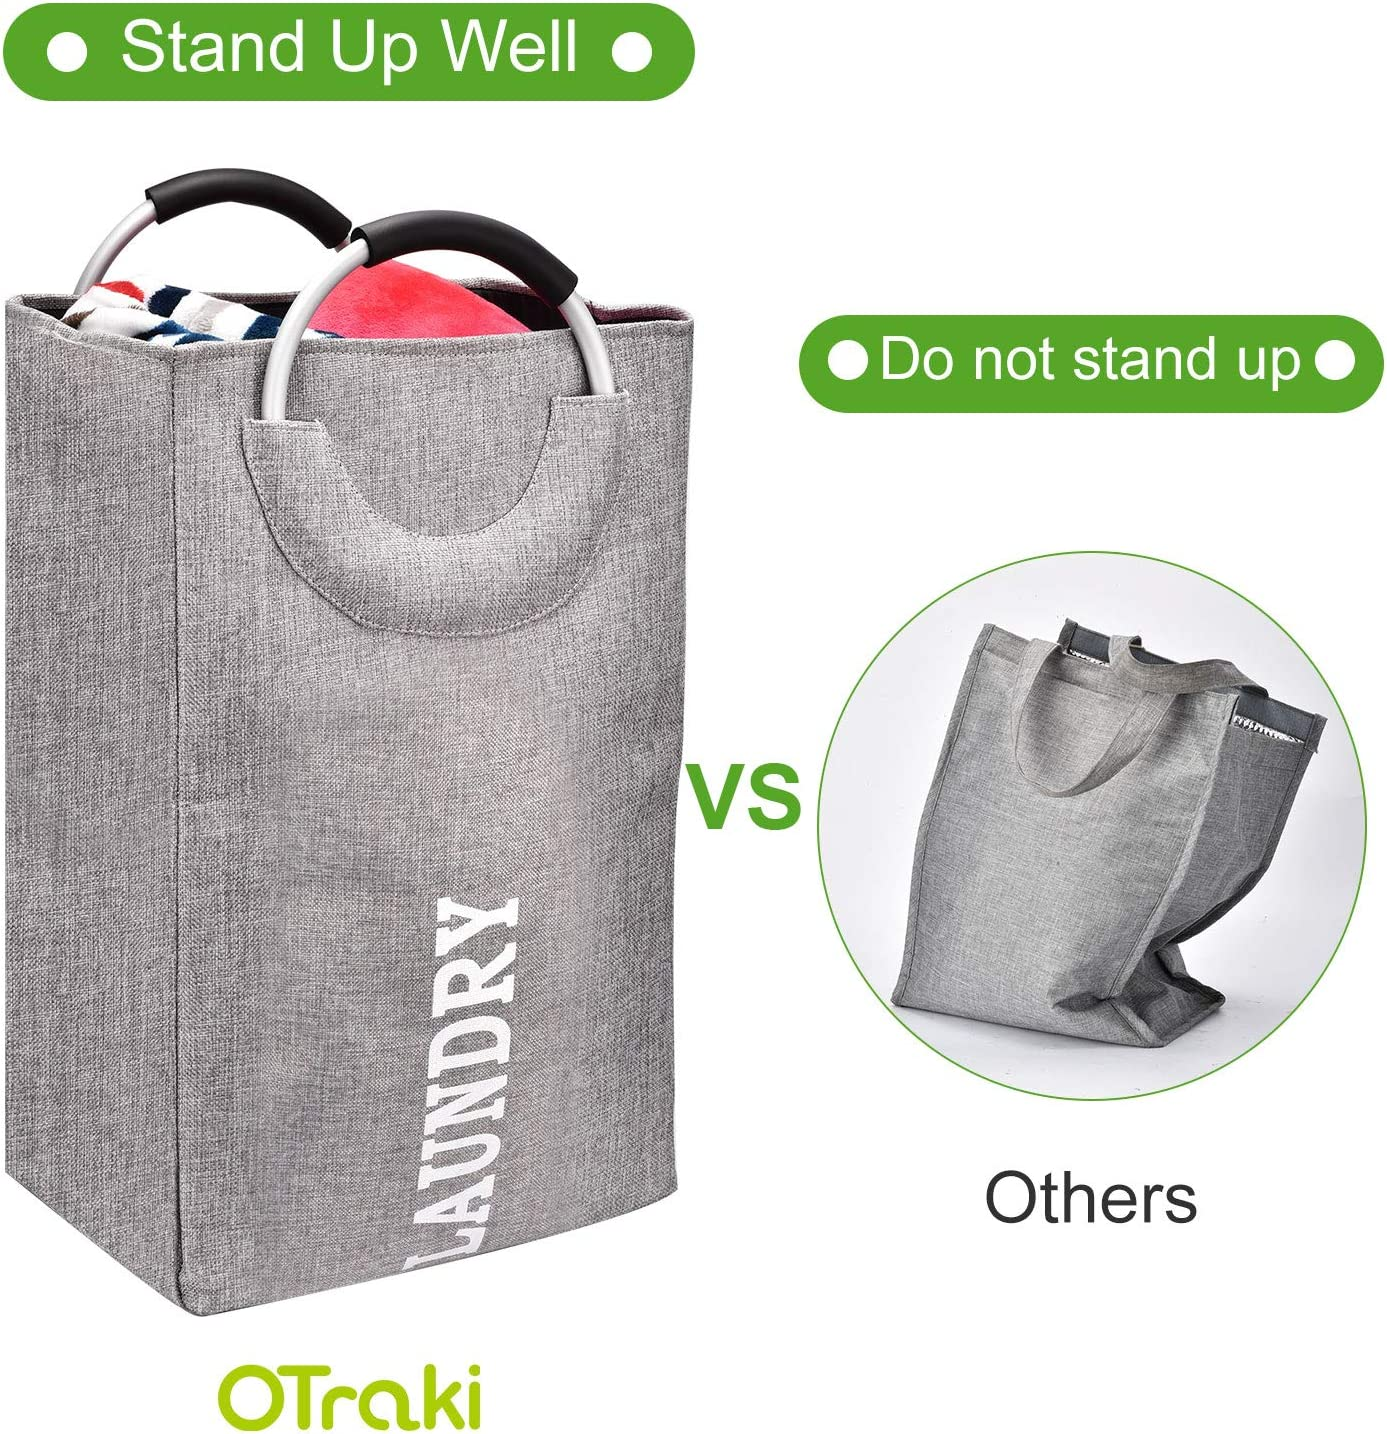 OTraki Large Laundry Hamper Collapsible with Handles 14 x 14 x 26 inch Tall Laundry Basket Dirty Clothes Linen 85L Standing Thickened Organizer College Dorm Travel Baby Toy Storage Container Gray